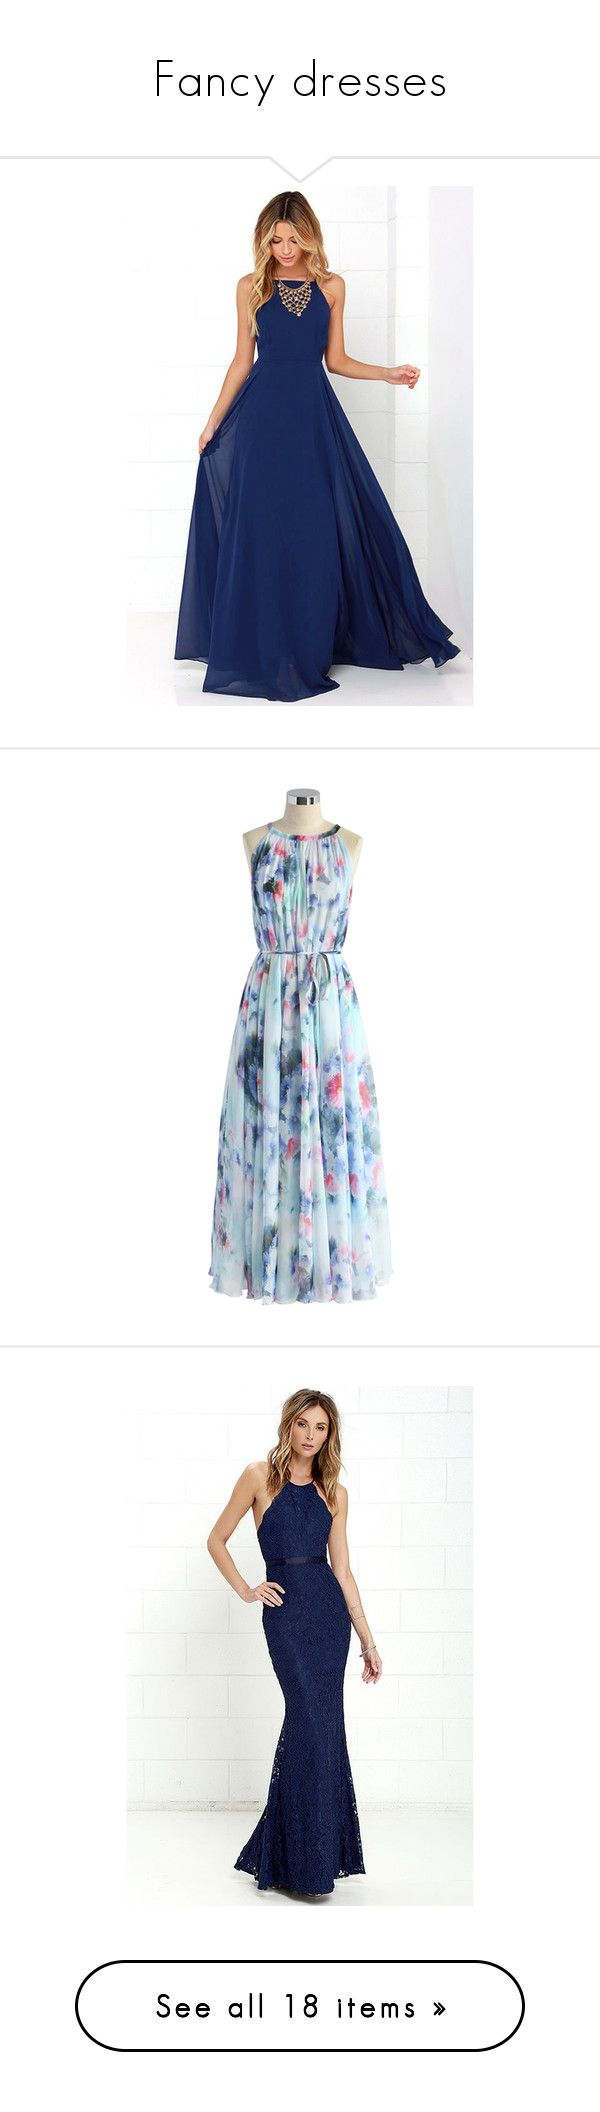 """""""Fancy dresses"""" by bonnie-pr ❤ liked on Polyvore featuring dresses, blue, blue maxi skirt, navy maxi dress, fitted maxi dresses, blue cocktail dress, navy blue cocktail dress, chicwish, blue maxi dress and summer maxi dresses"""